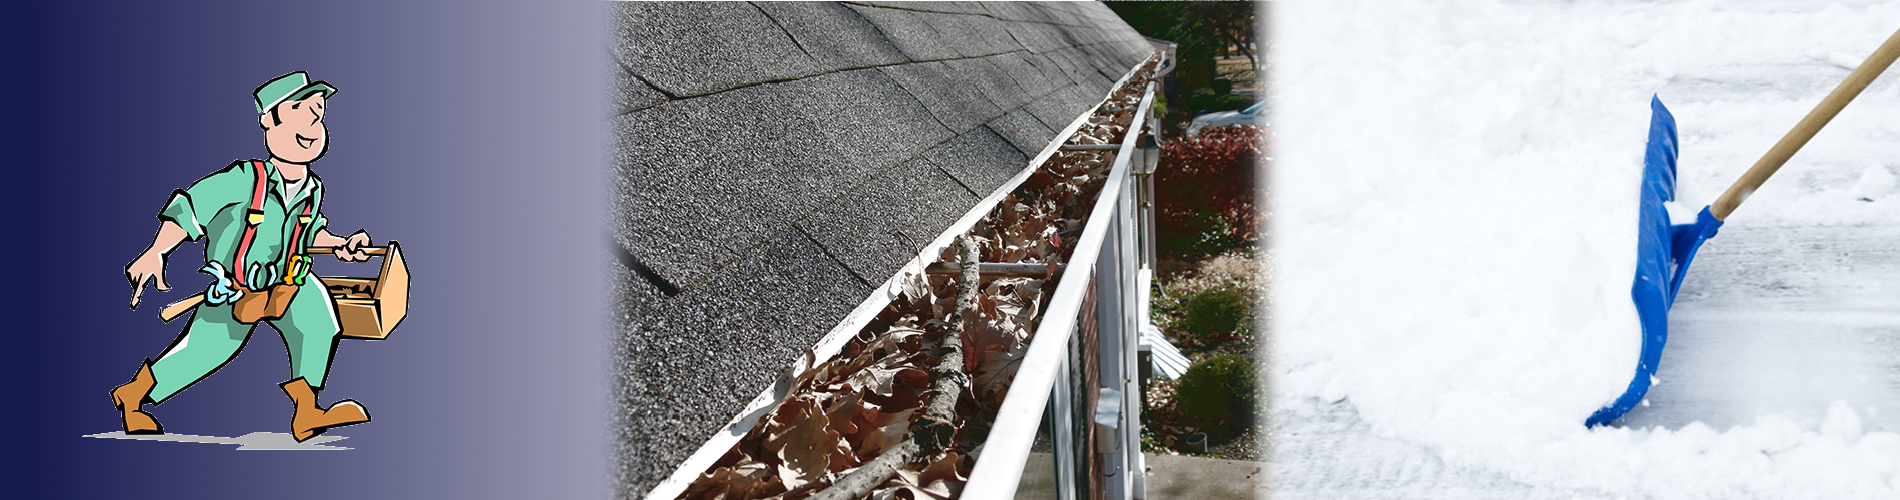 Handyman, Gutter Cleaning, and Snow Removal